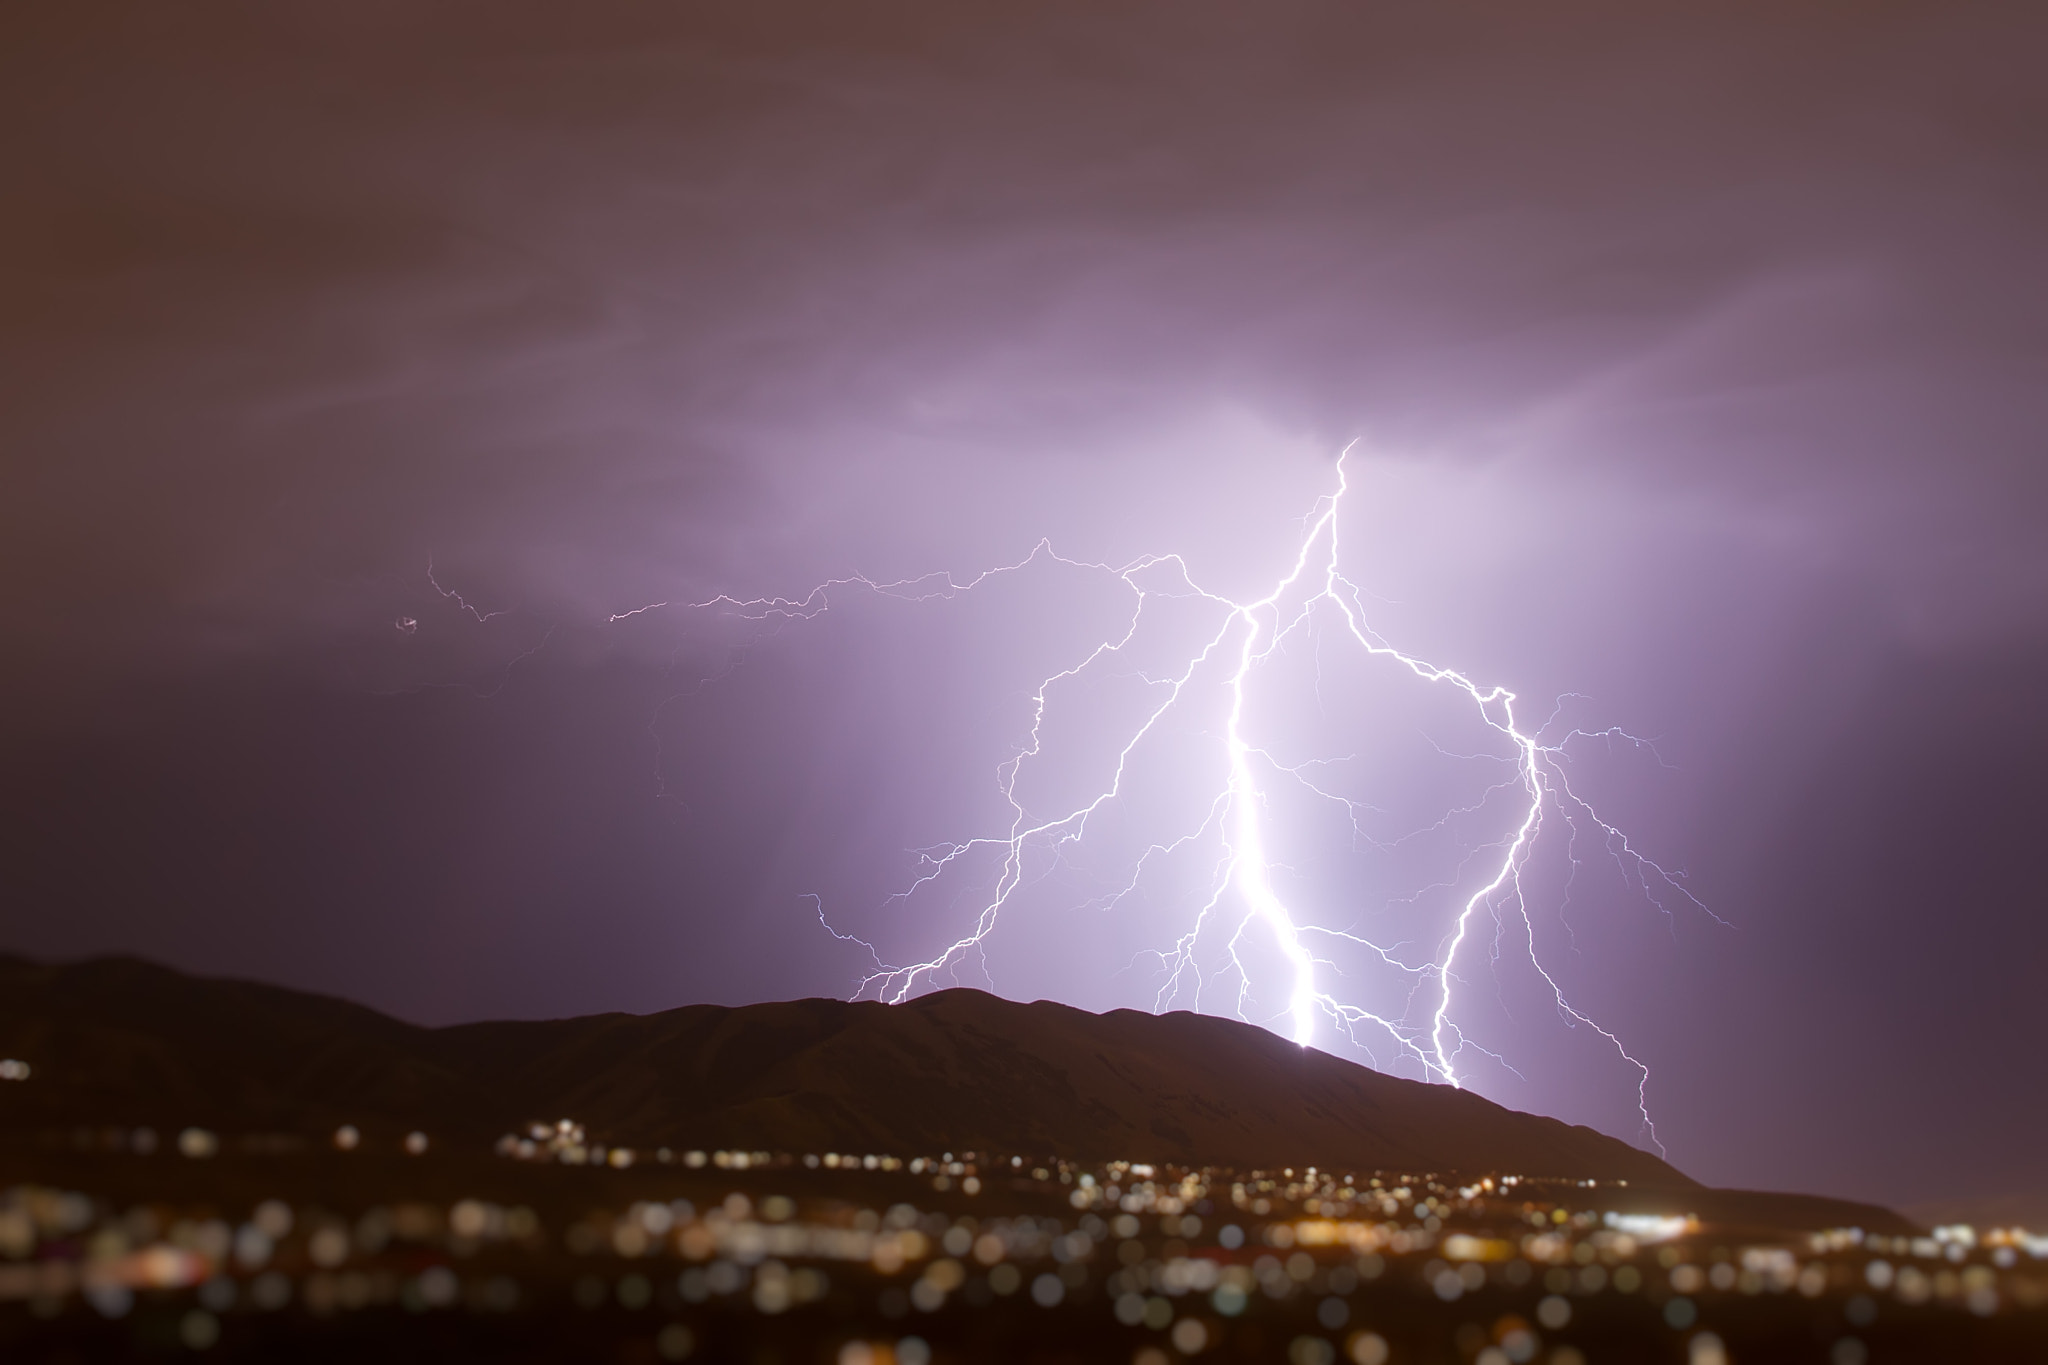 Photograph angry zeus by Scott Stringham on 500px